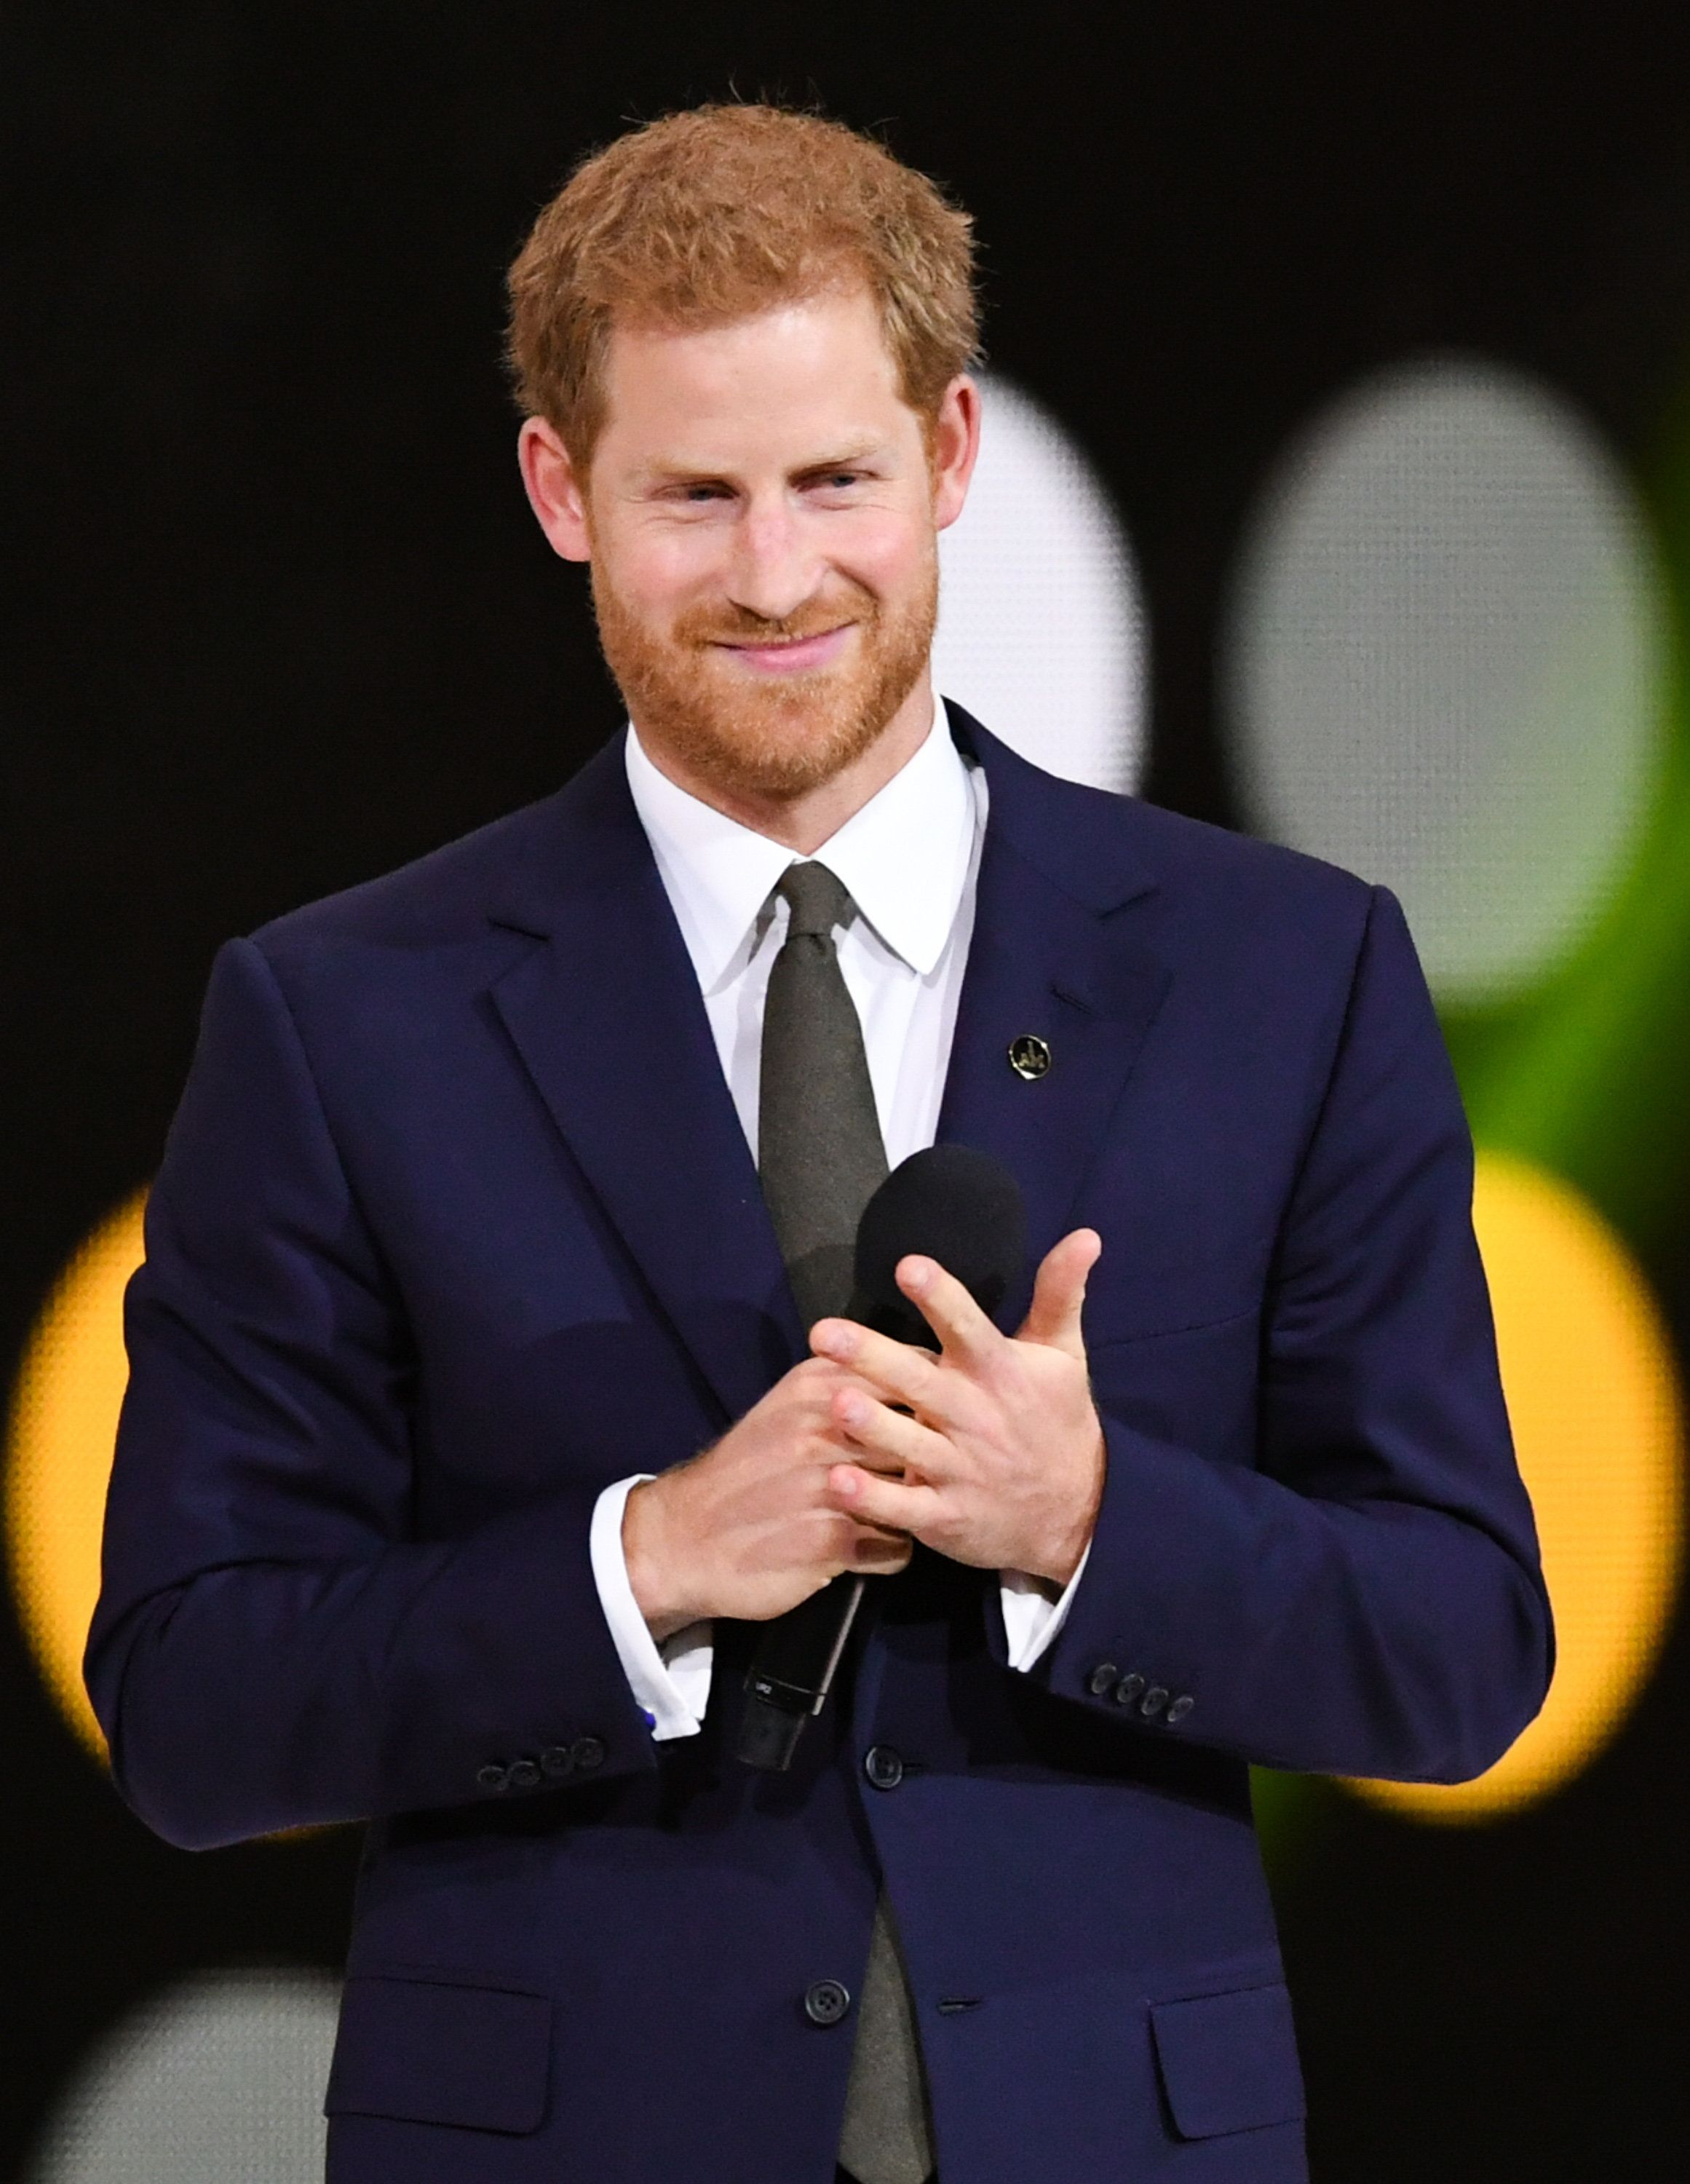 TORONTO, ON - SEPTEMBER 23:  Prince Harry gives a speech at the opening ceremony on day 1 of the Invictus Games Toronto 2017 on September 23, 2017 in Toronto, Canada.  The Games use the power of sport to inspire recovery, support rehabilitation and generate a wider understanding and respect for the Armed Forces.  (Photo by Samir Hussein/WireImage)